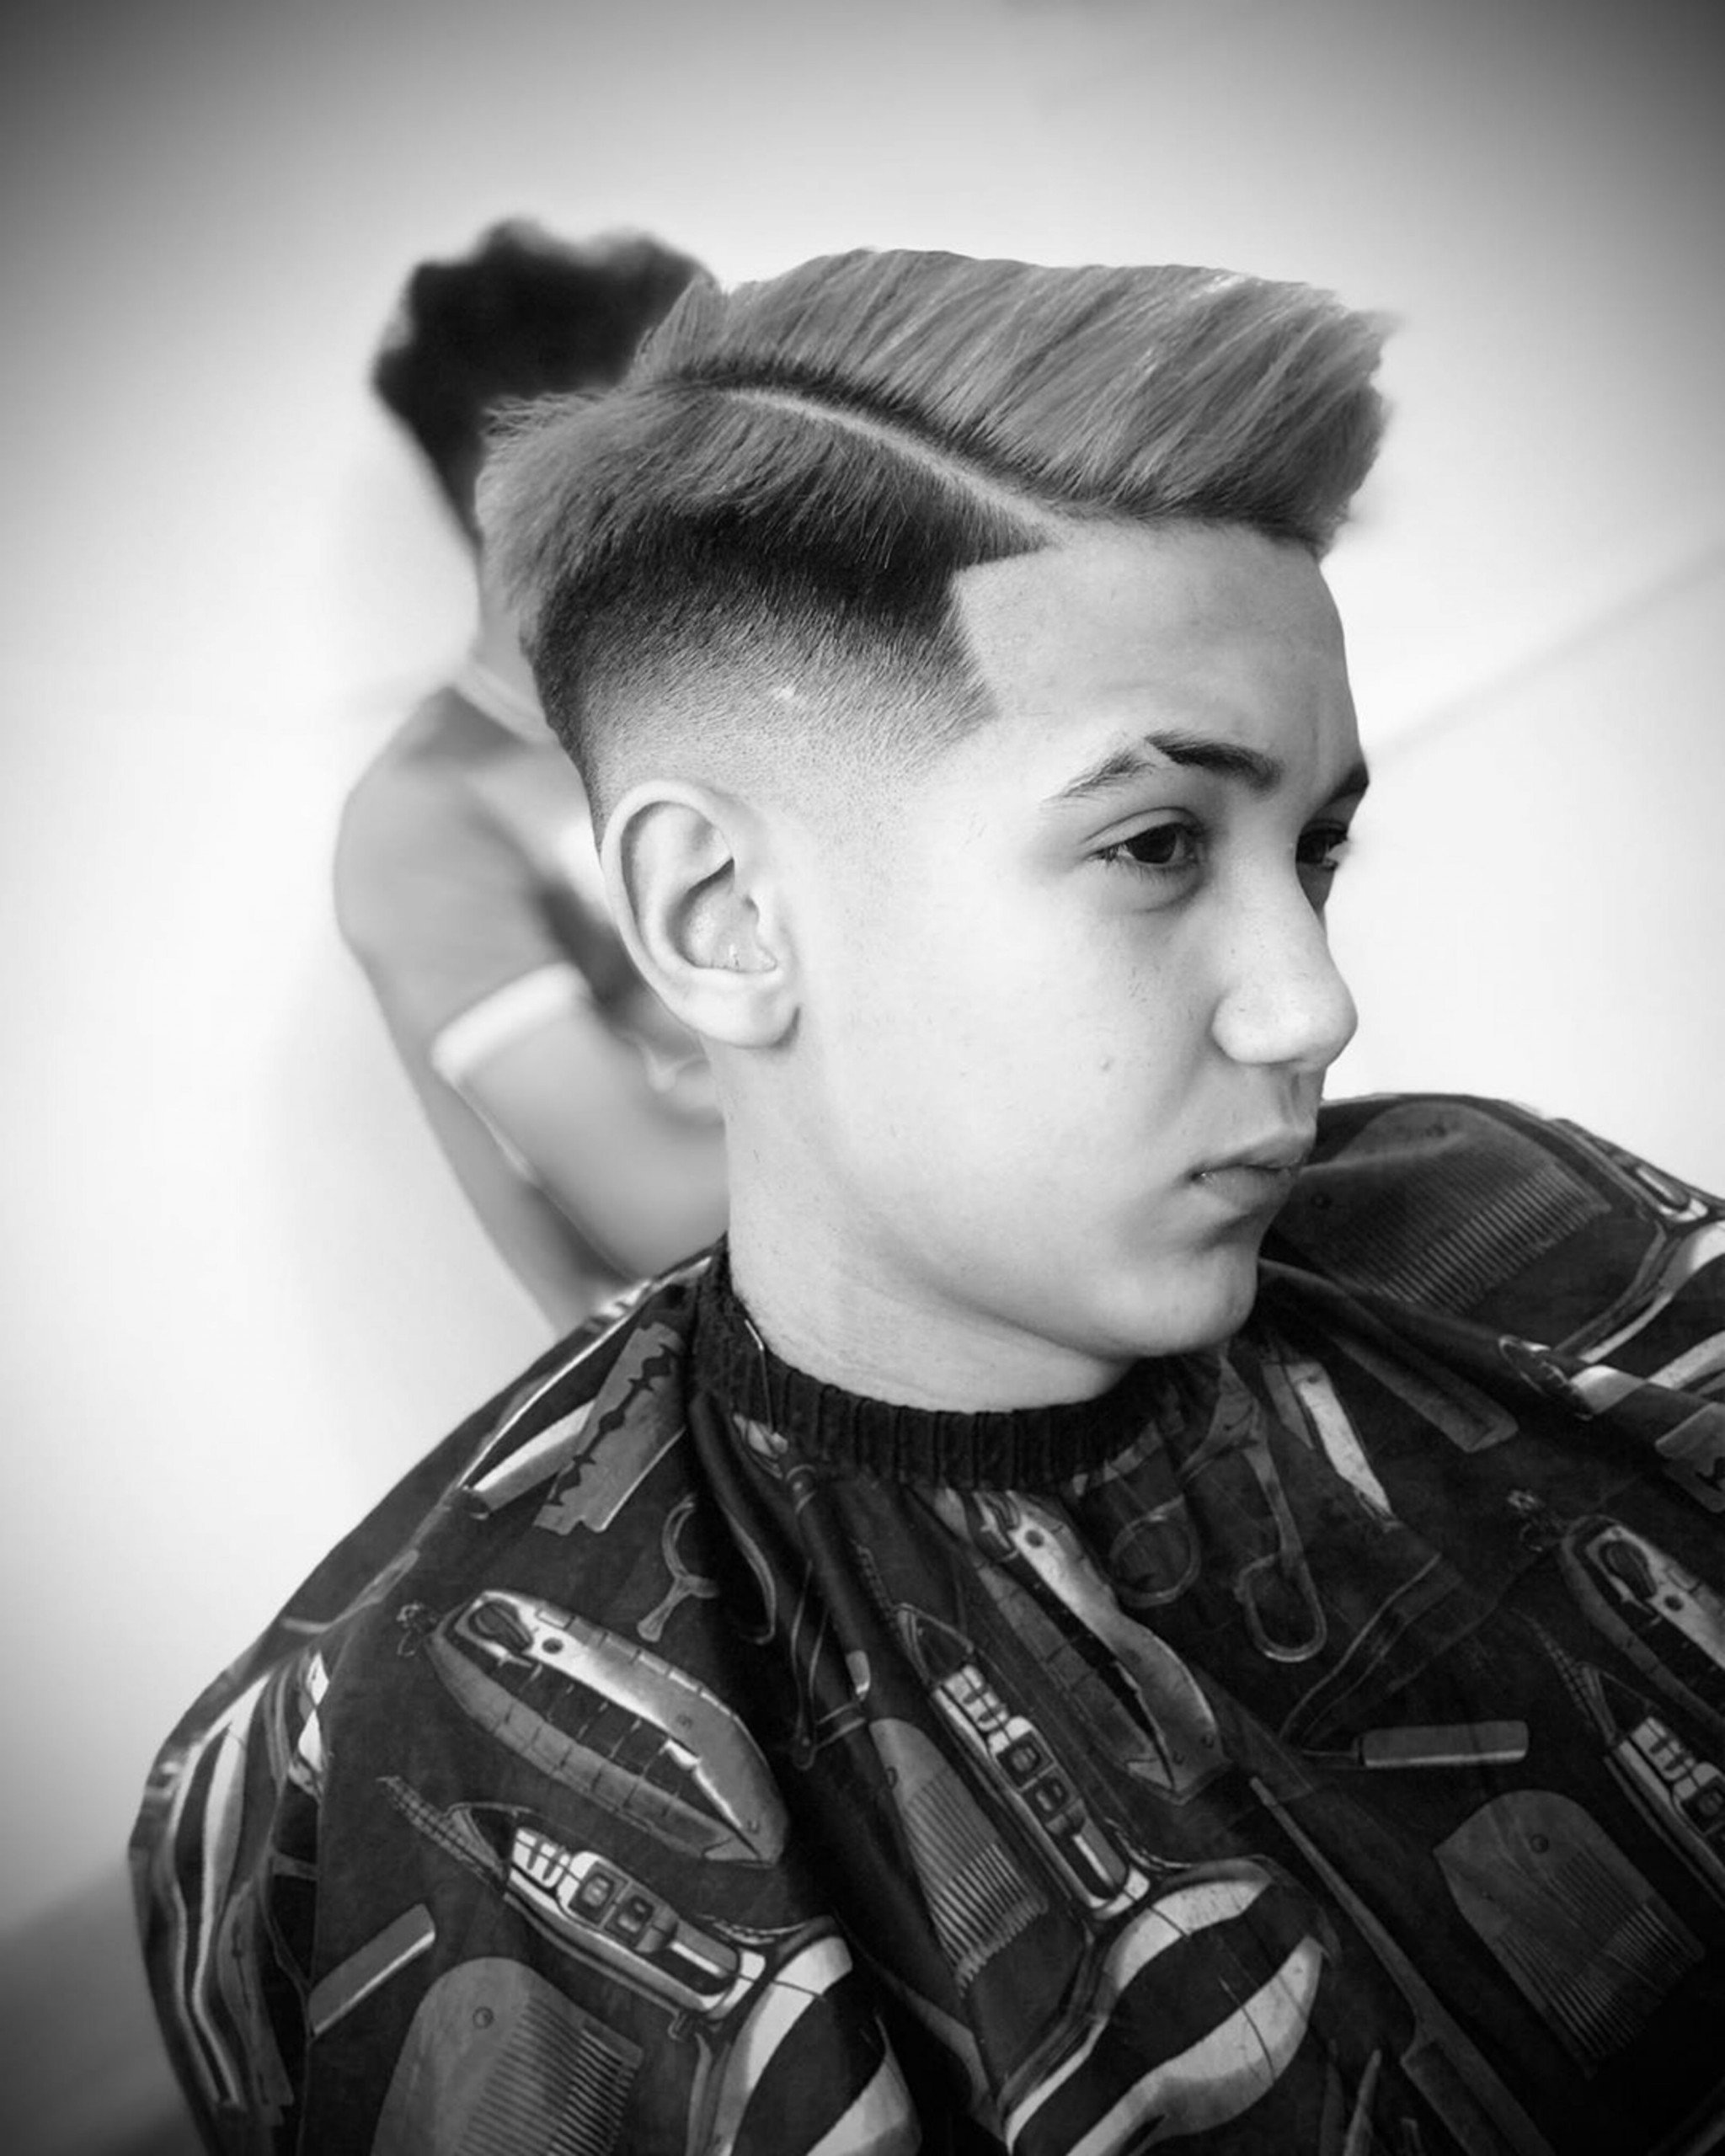 A middle-faded haircut for boys.